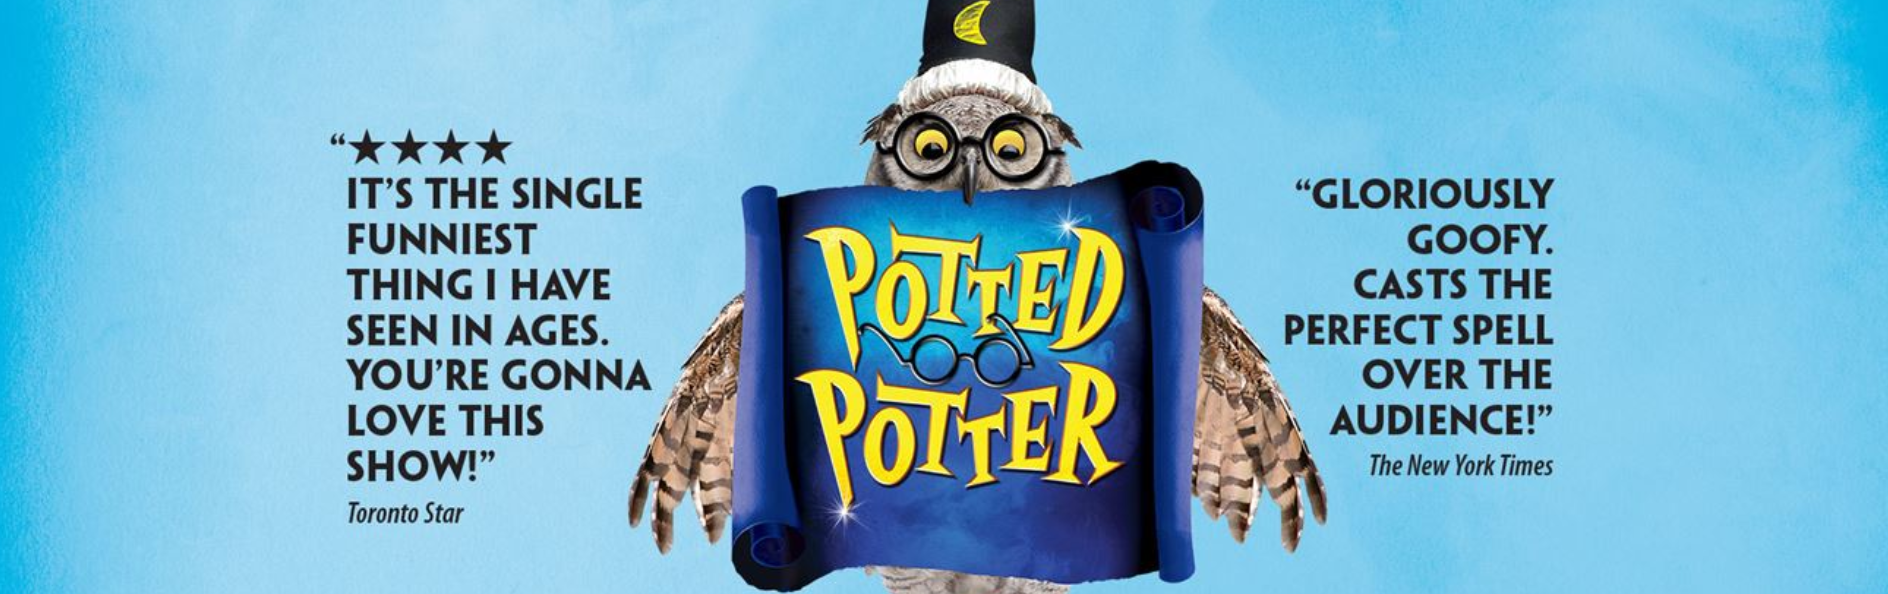 Potted Potter heading with reviews